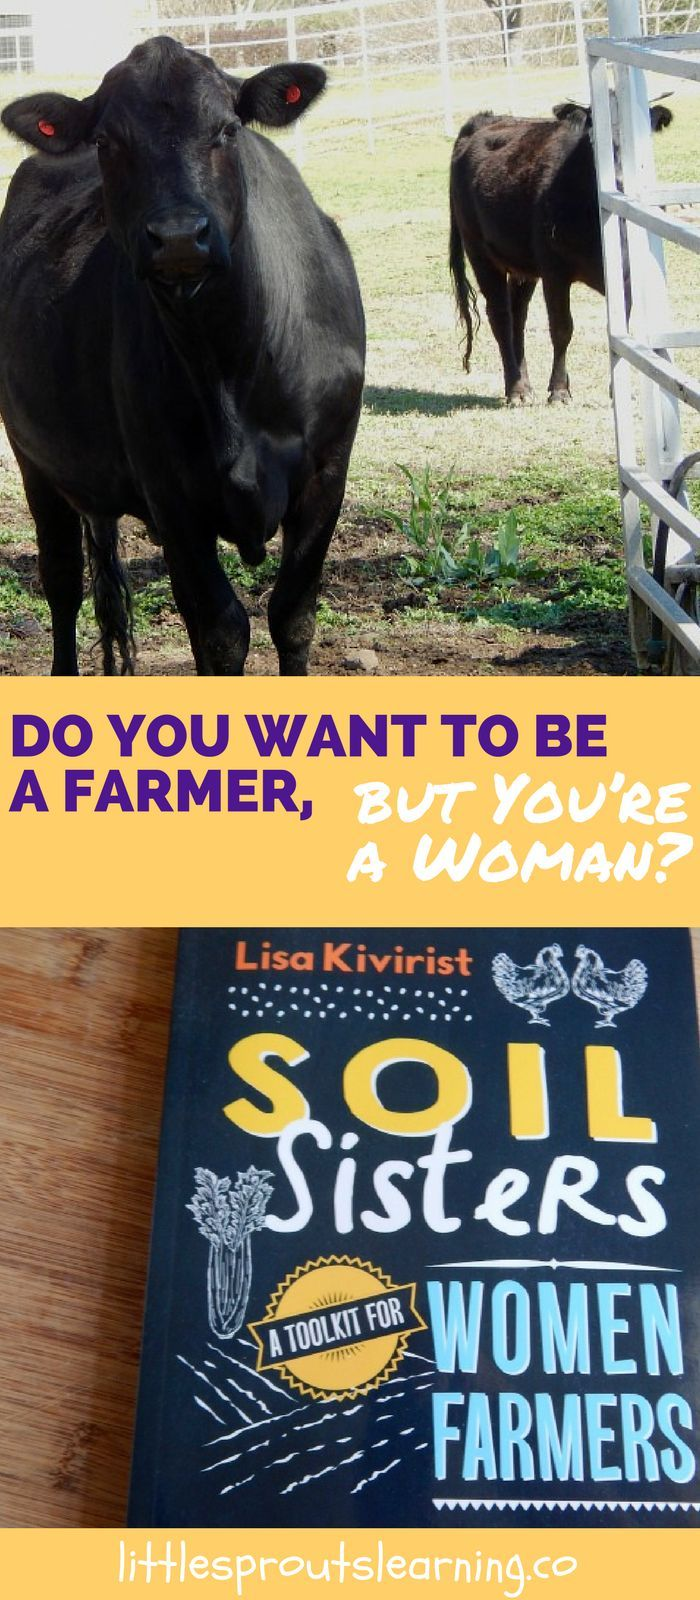 Do you Want to be a Farmer, but You're a Woman?